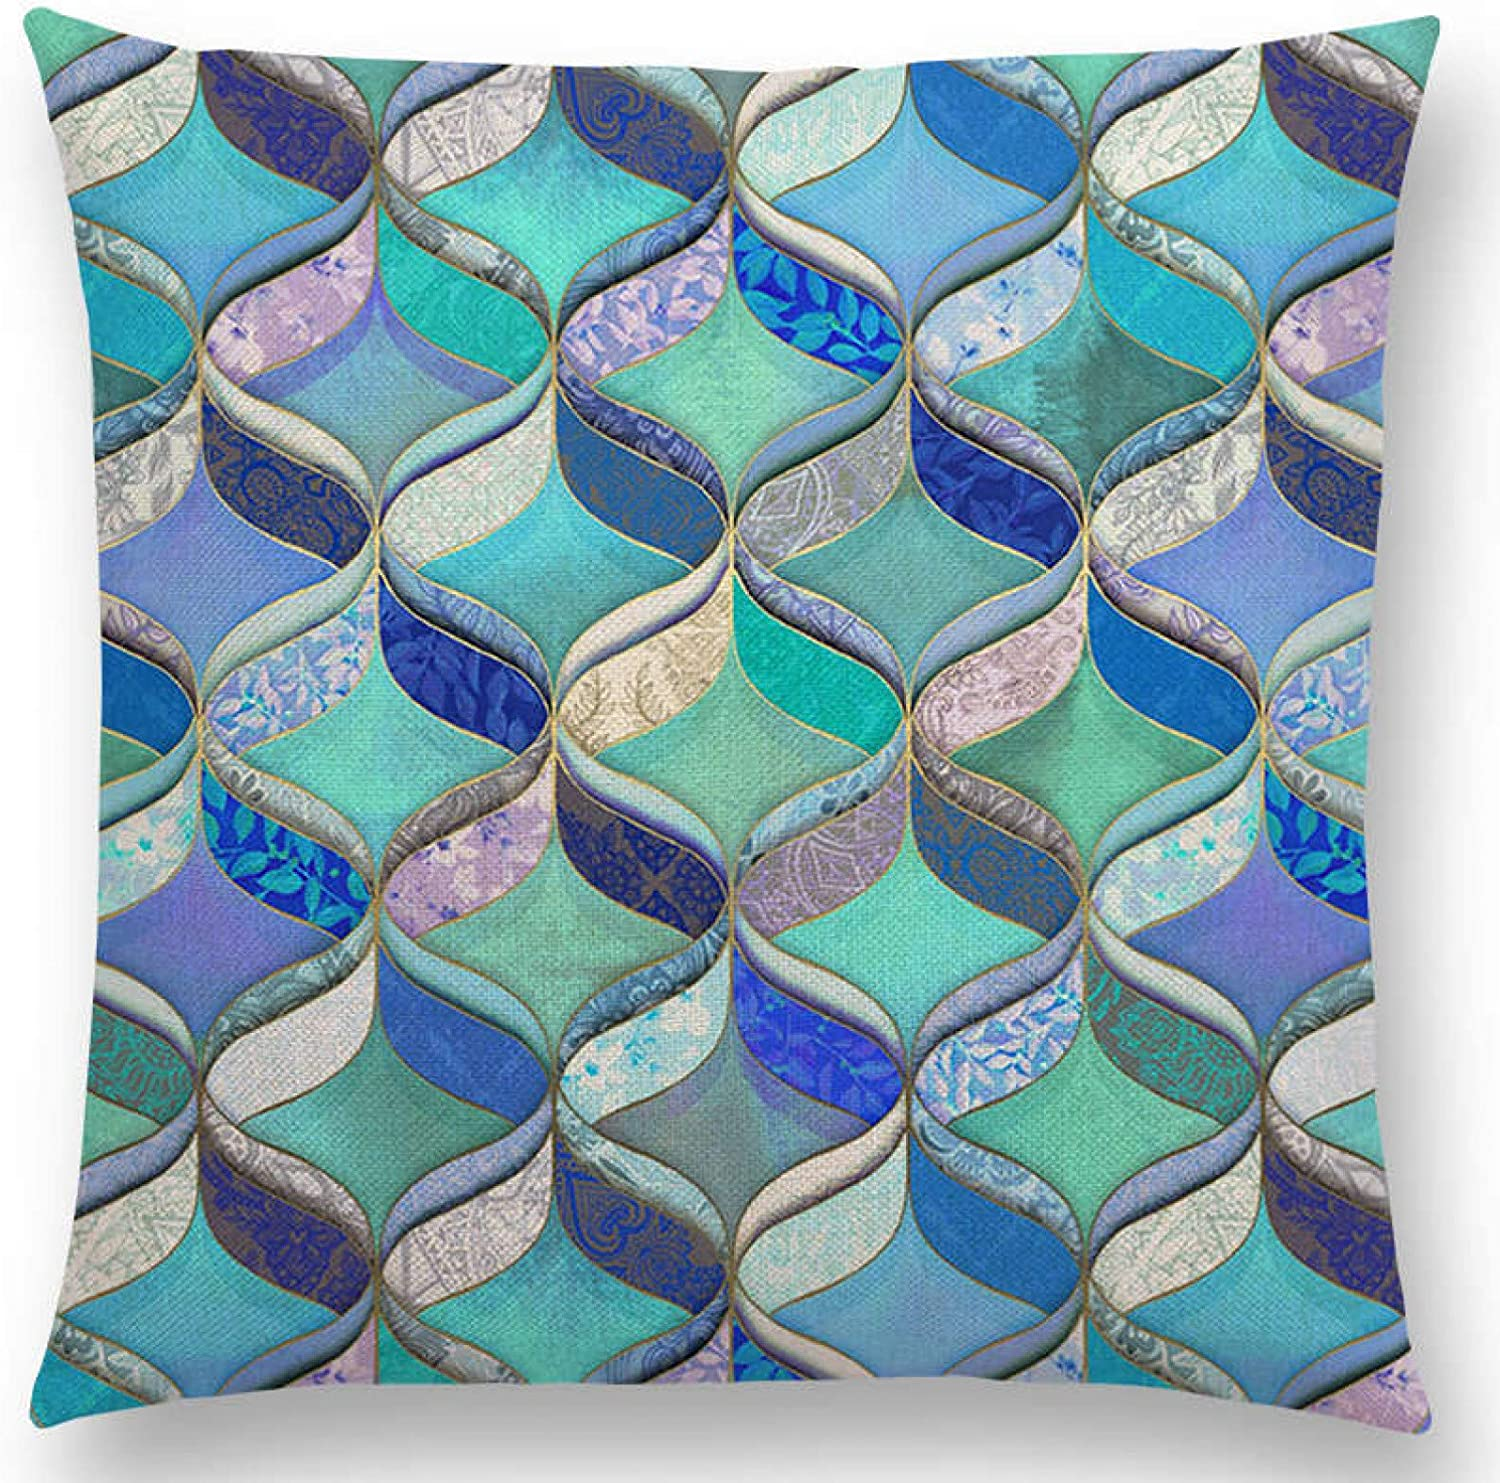 Cushion Cover Sofa pillowcase New Abstract Iridescent Stripes Bubbles Pastel Rainbow Geometric Painting Watercolor Sofa Throw Pillow Case Car Cushion Cover sofa home decor christmas new year gift